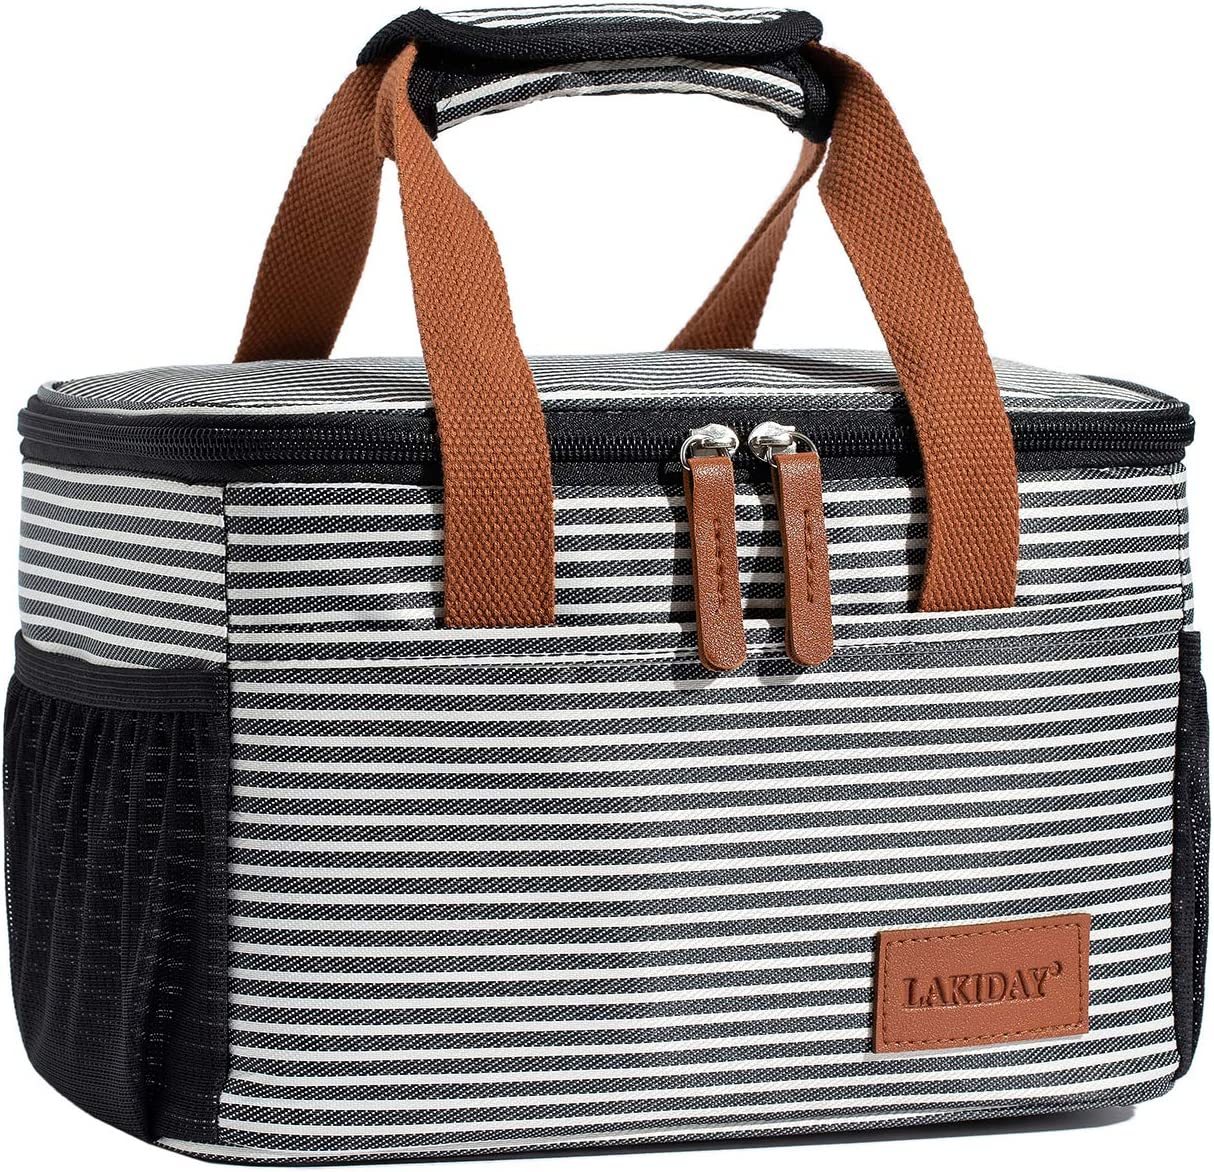 LAKIDAY Insulated Lunch Bag for Women/Kids Cooler Bag Lunch Tote Box Container Leakproof for WorkOutdoor(Black White Strip-1)